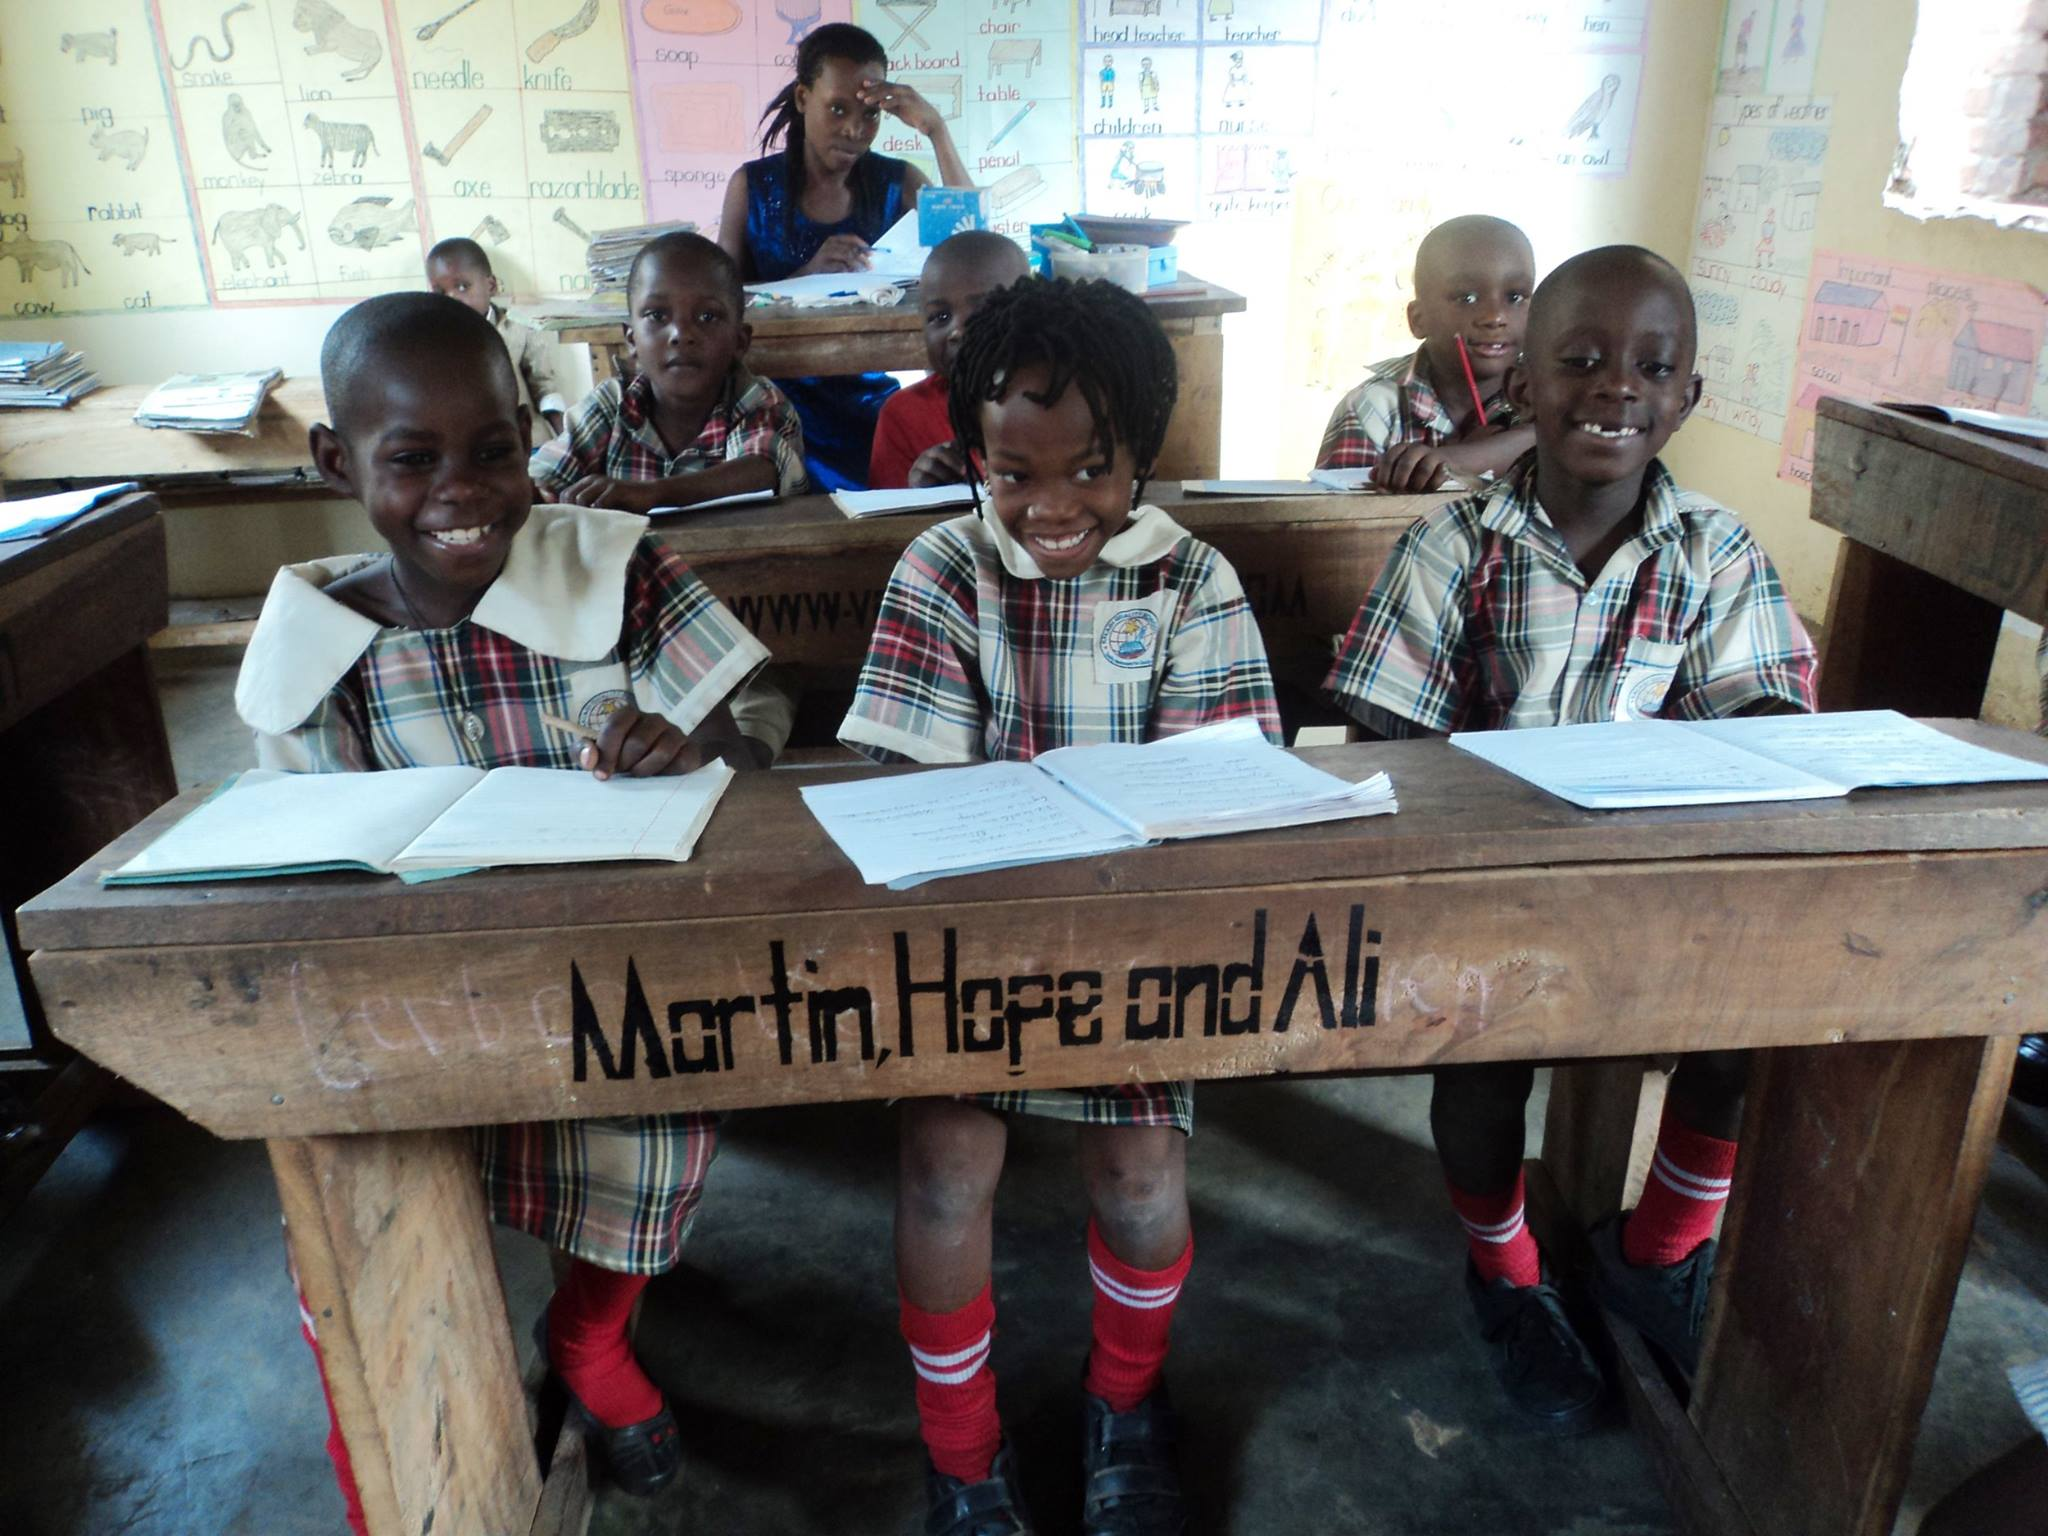 Image Of School Desk In Uganda With Author Names On It